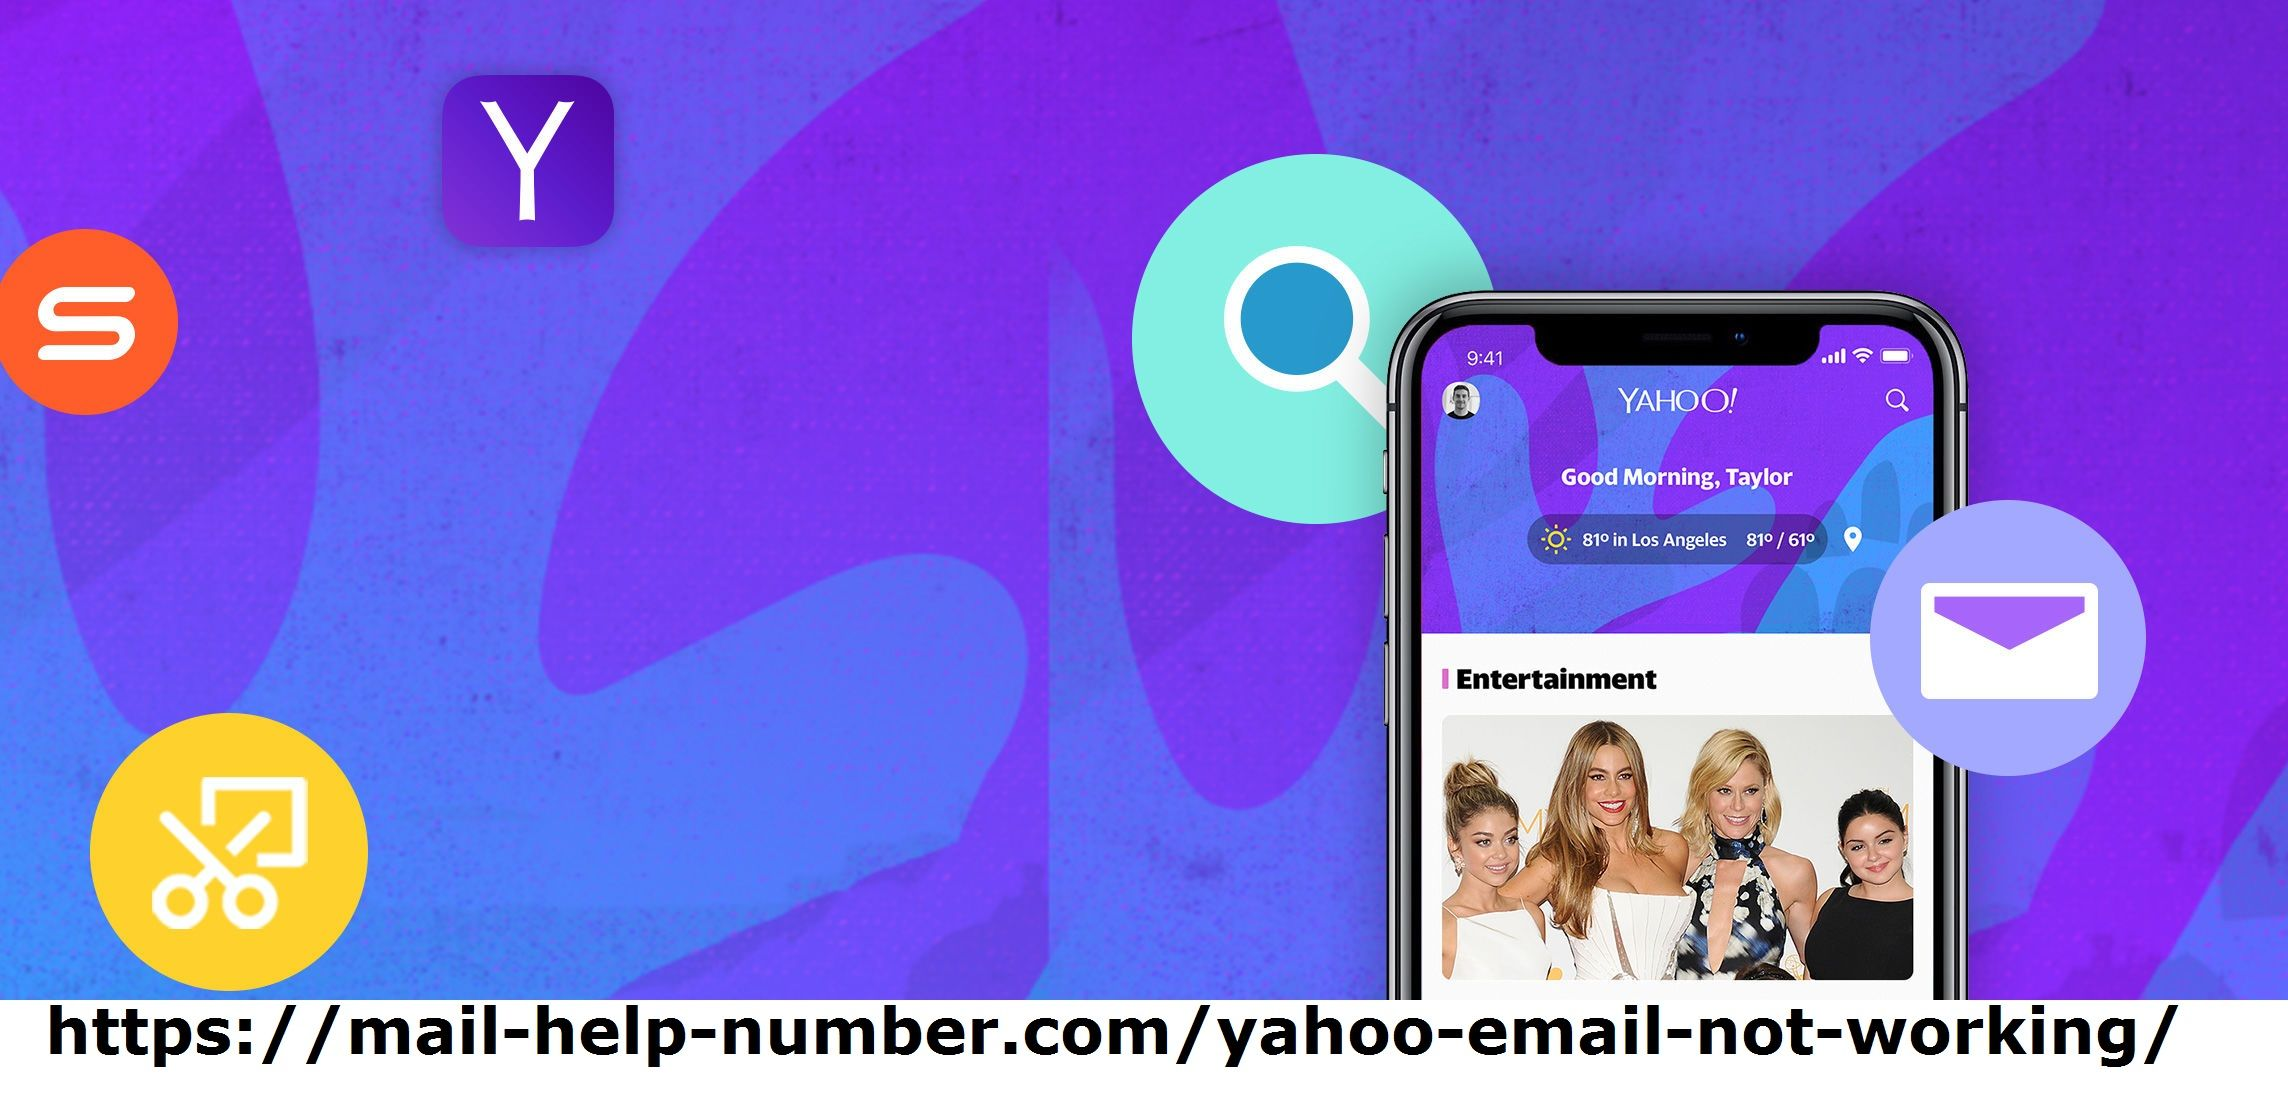 Yahoo Email Toll Free Number Email programs, Work email